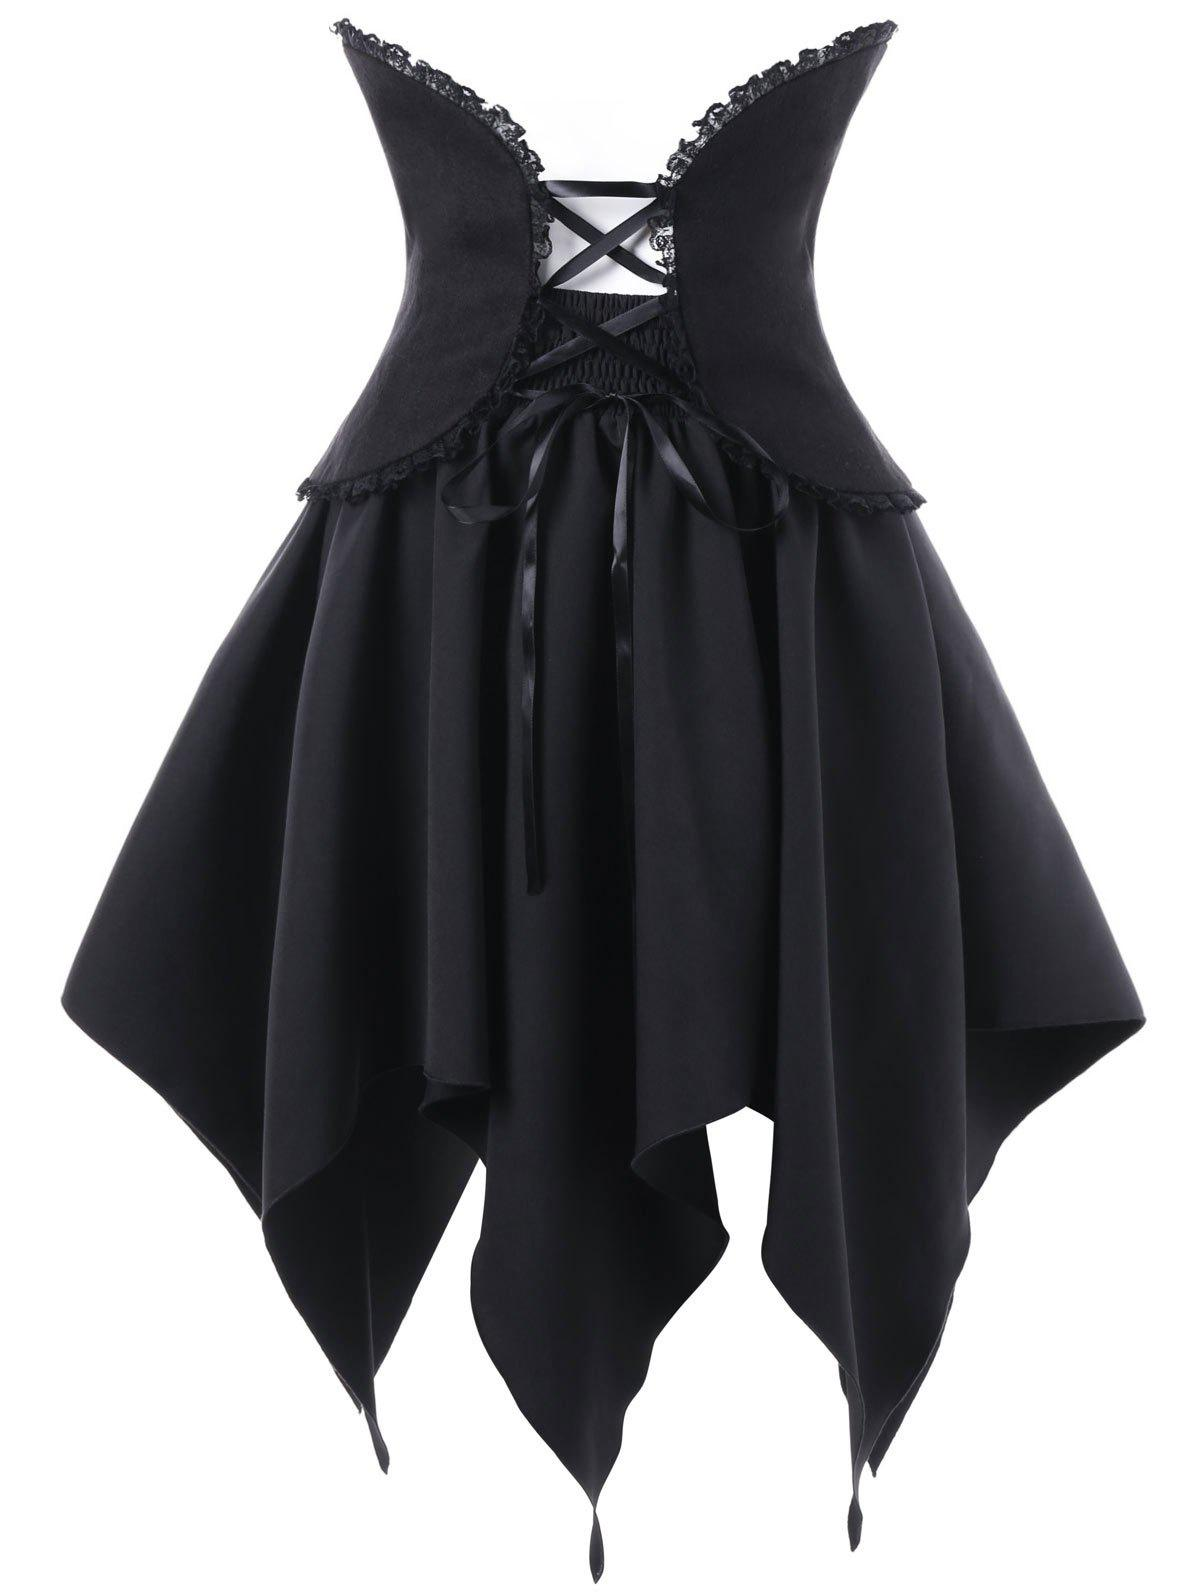 New Halloween Lace Up Handerchief Skirt with Corset Cummerbund